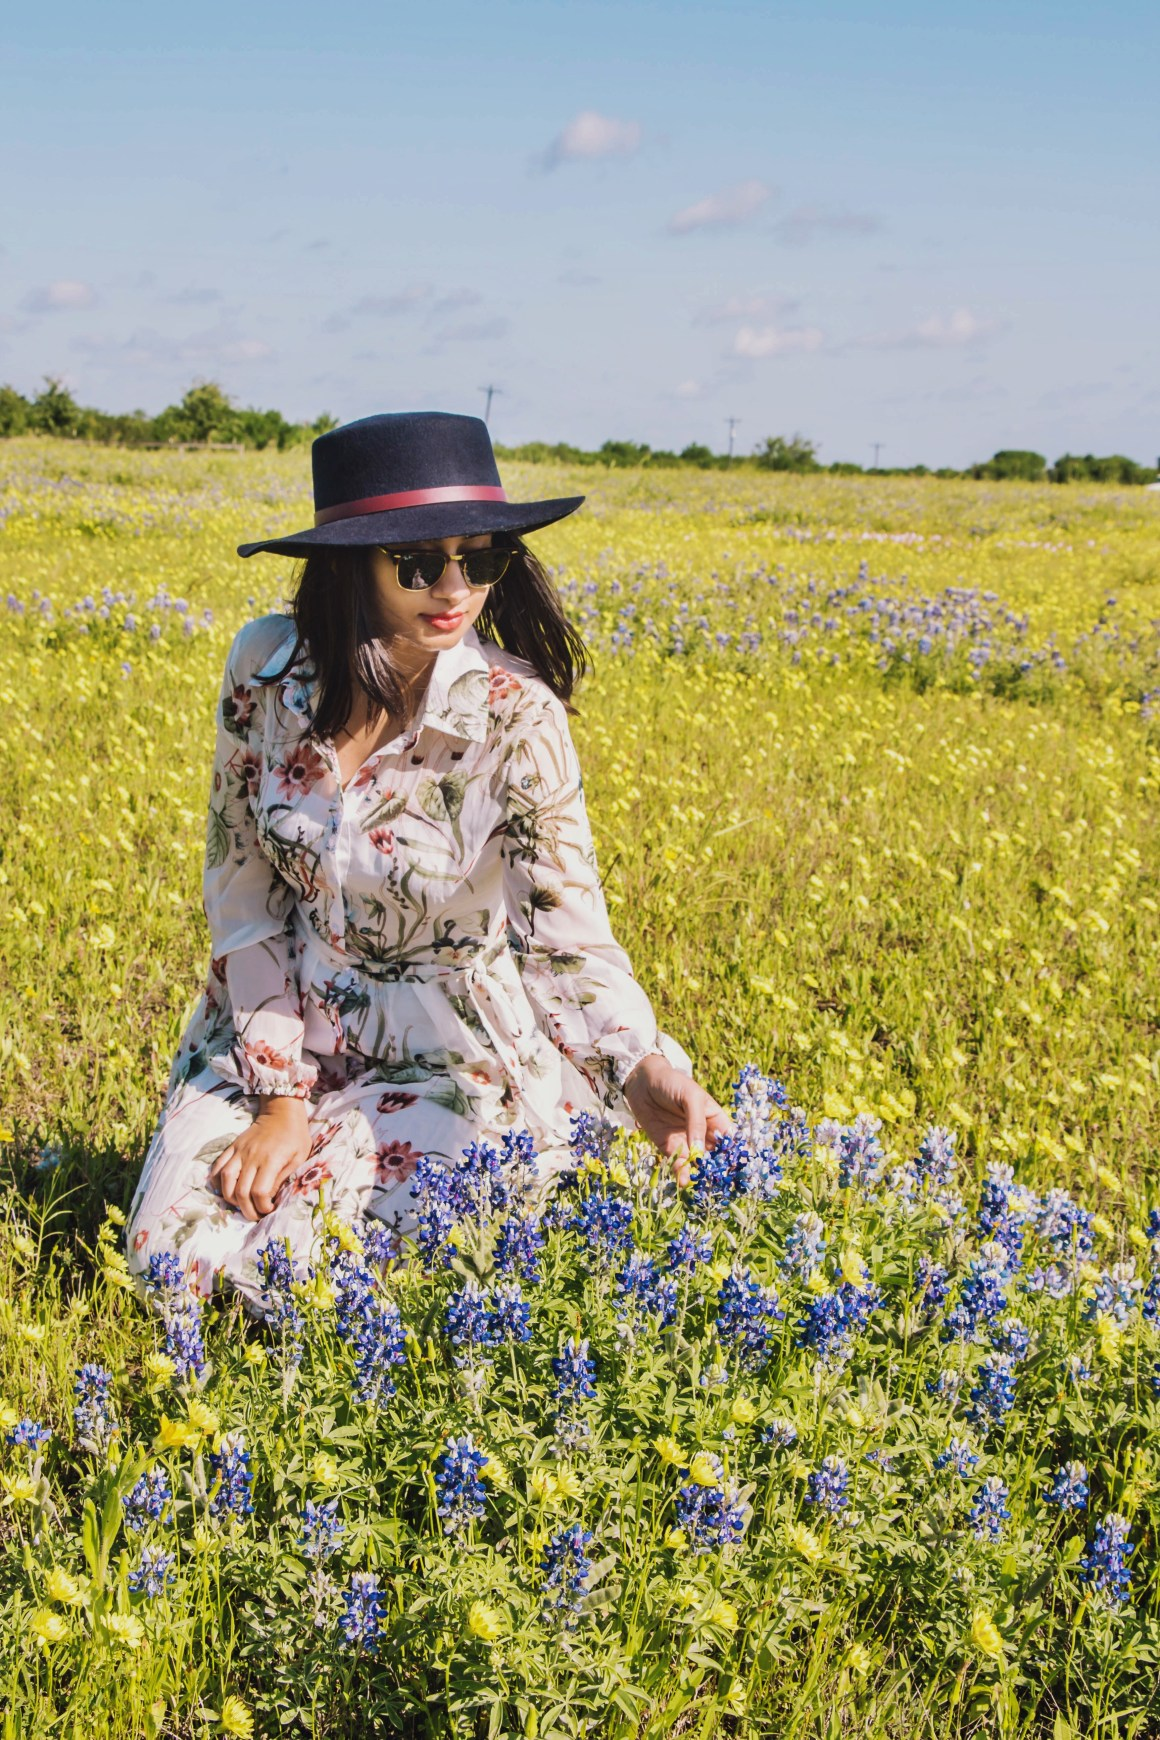 Texas Bluebonnets - The Vagabond Wayfarer